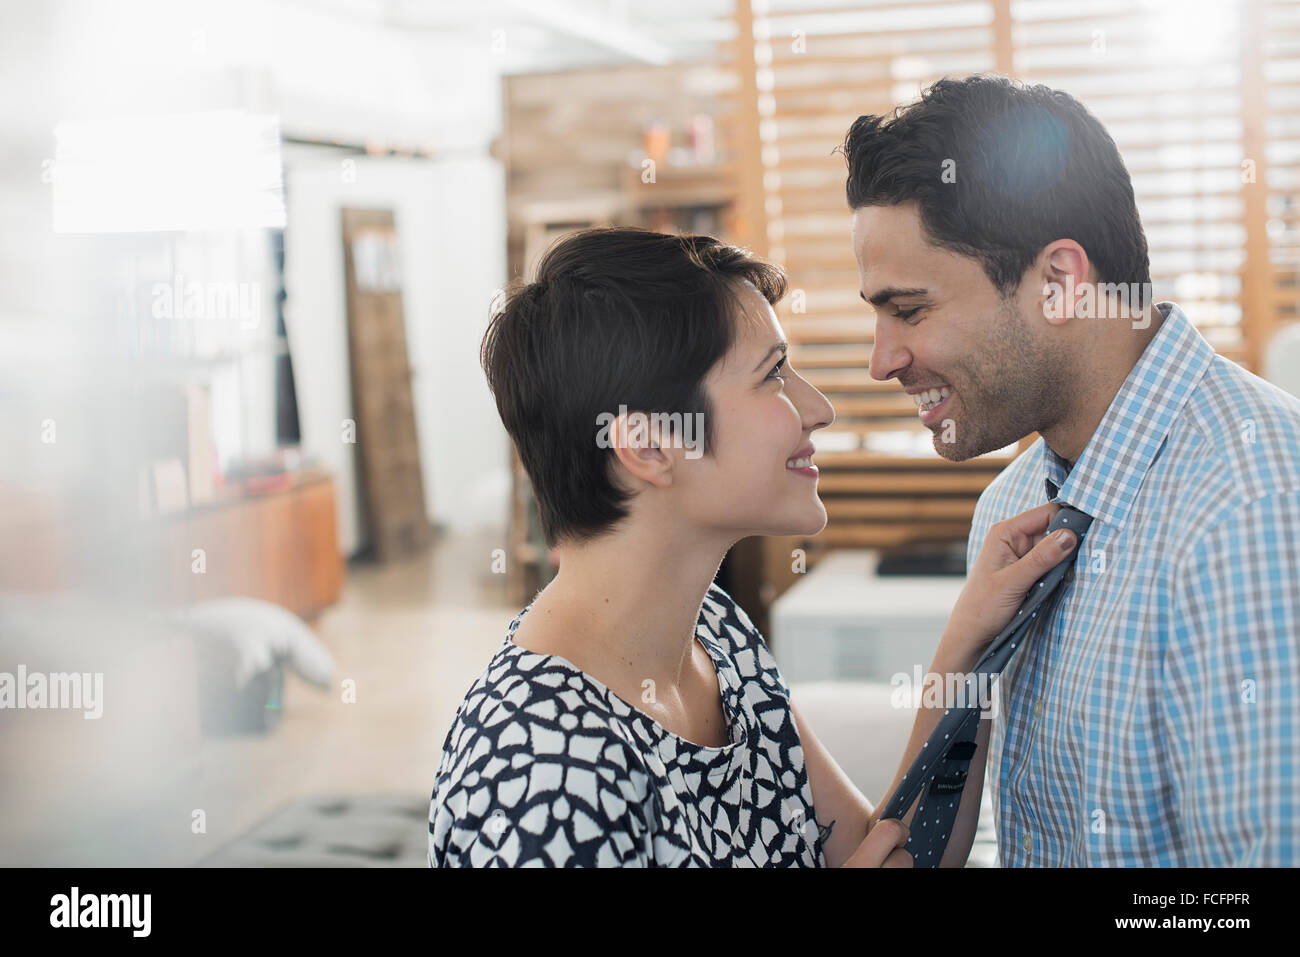 A woman adjusting a man's tie, smiling at him. - Stock Image